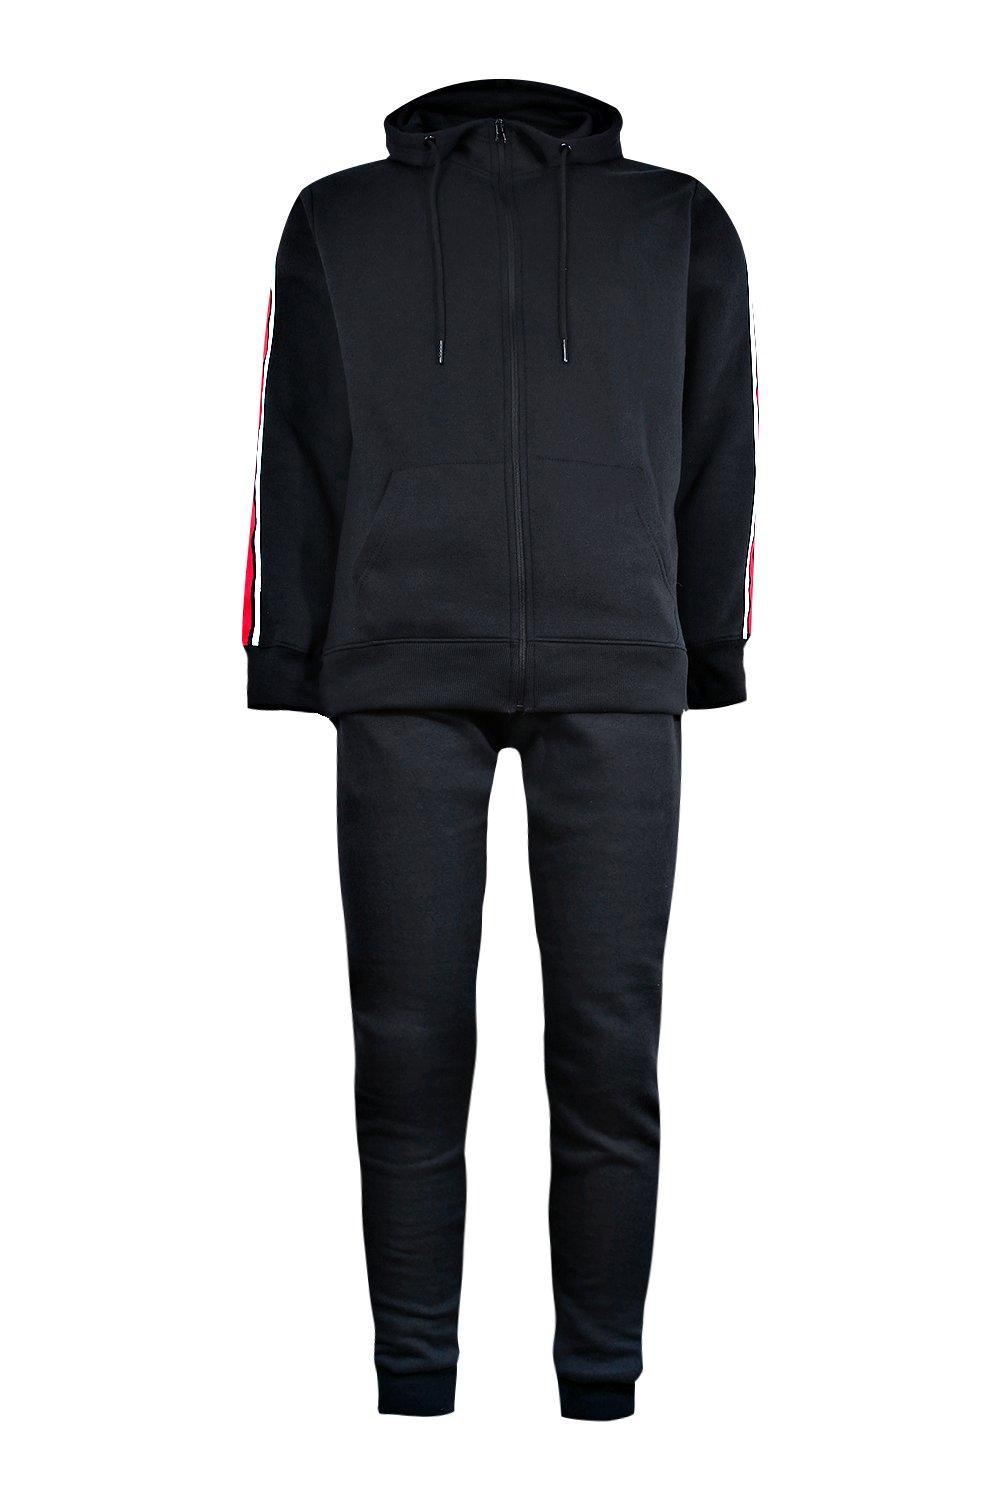 boohooMAN black Zip Through Hooded Tracksuit With Side Taping